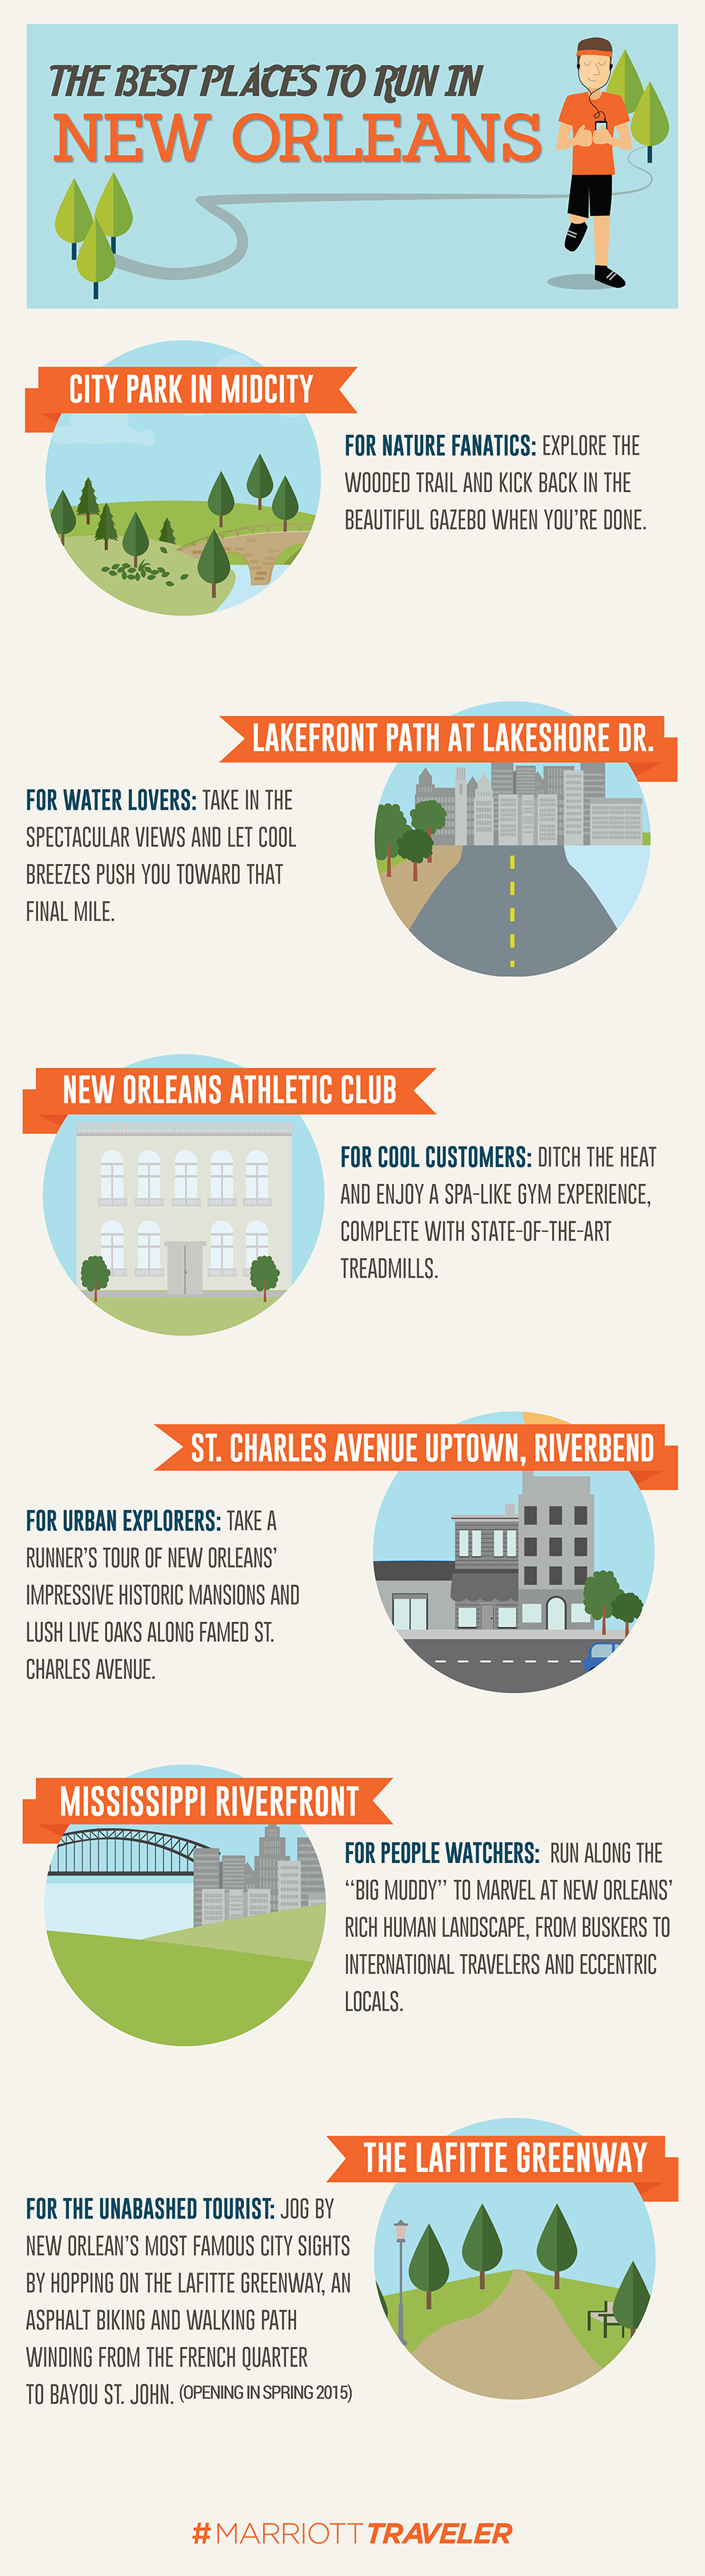 best places to run in new orleans